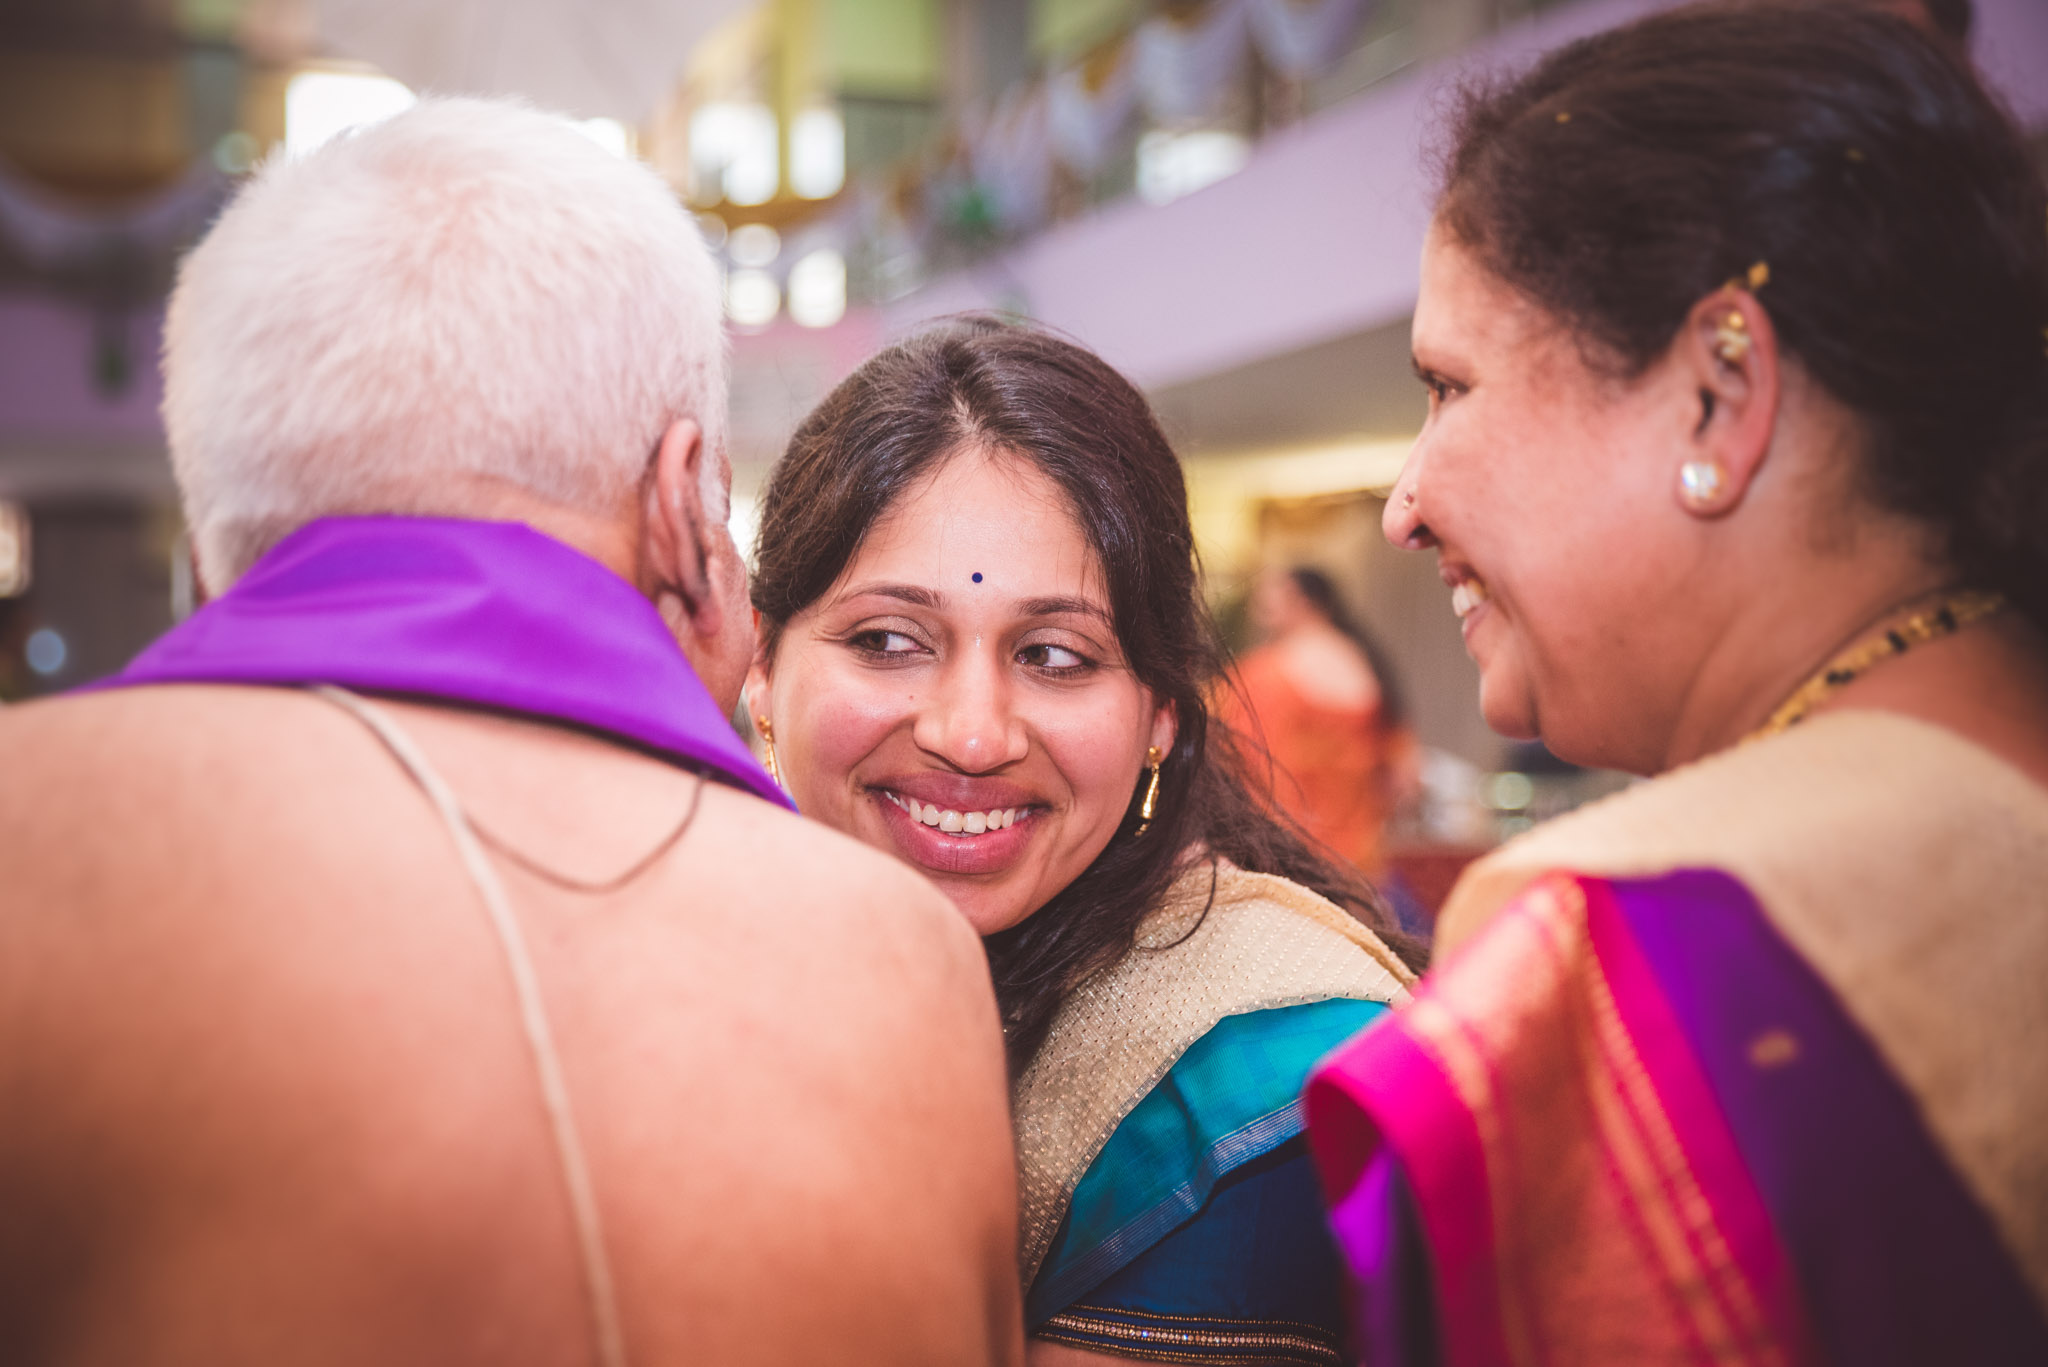 WhatKnot-Candid-Wedding-Photography-Mumbai-Bangalore-71